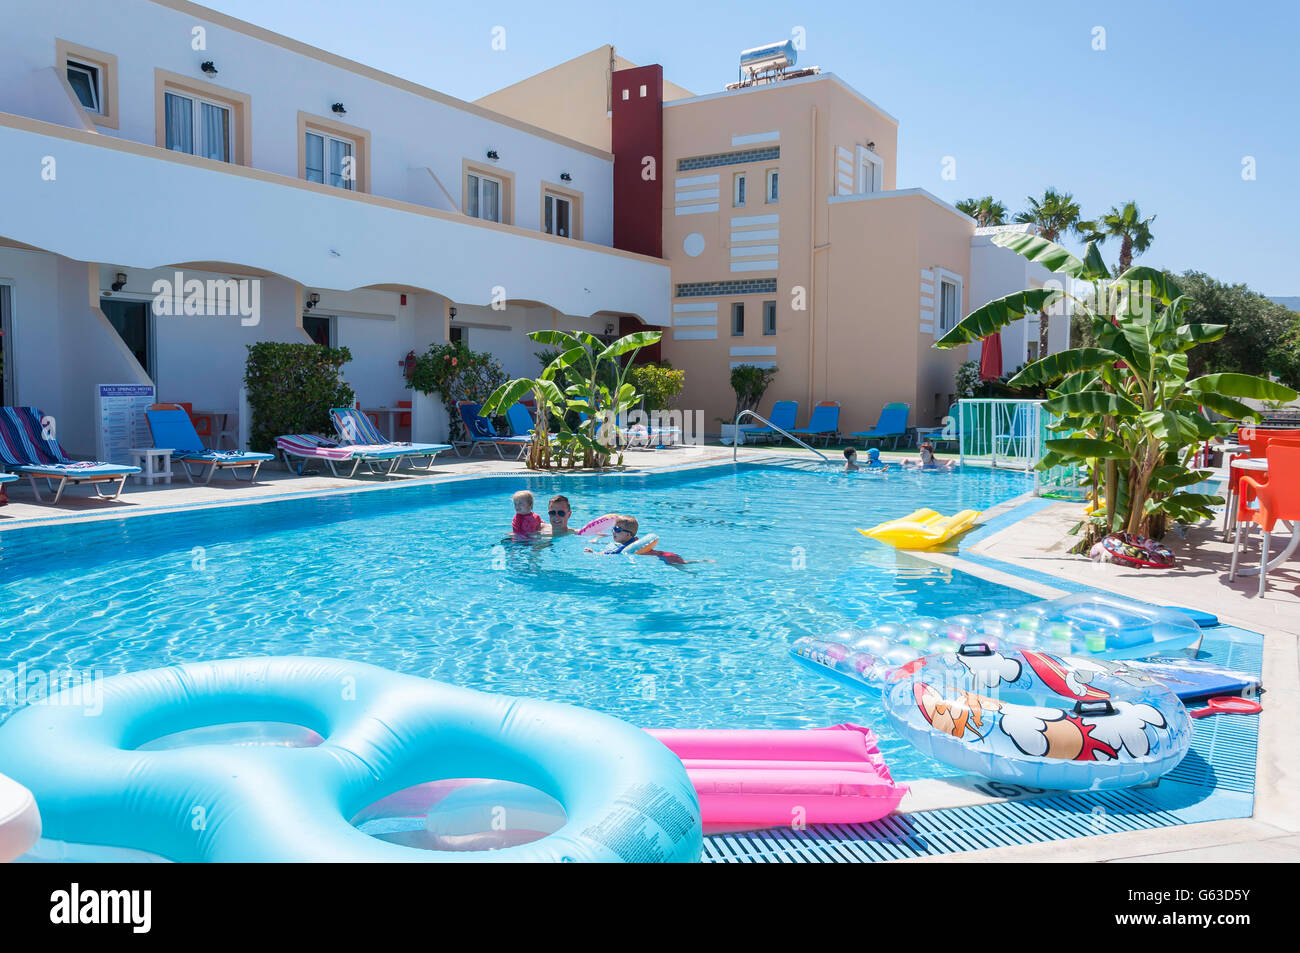 Family In Swimming Pool At Alice Springs Hotel Lambi Kos Cos The Stock Photo Royalty Free